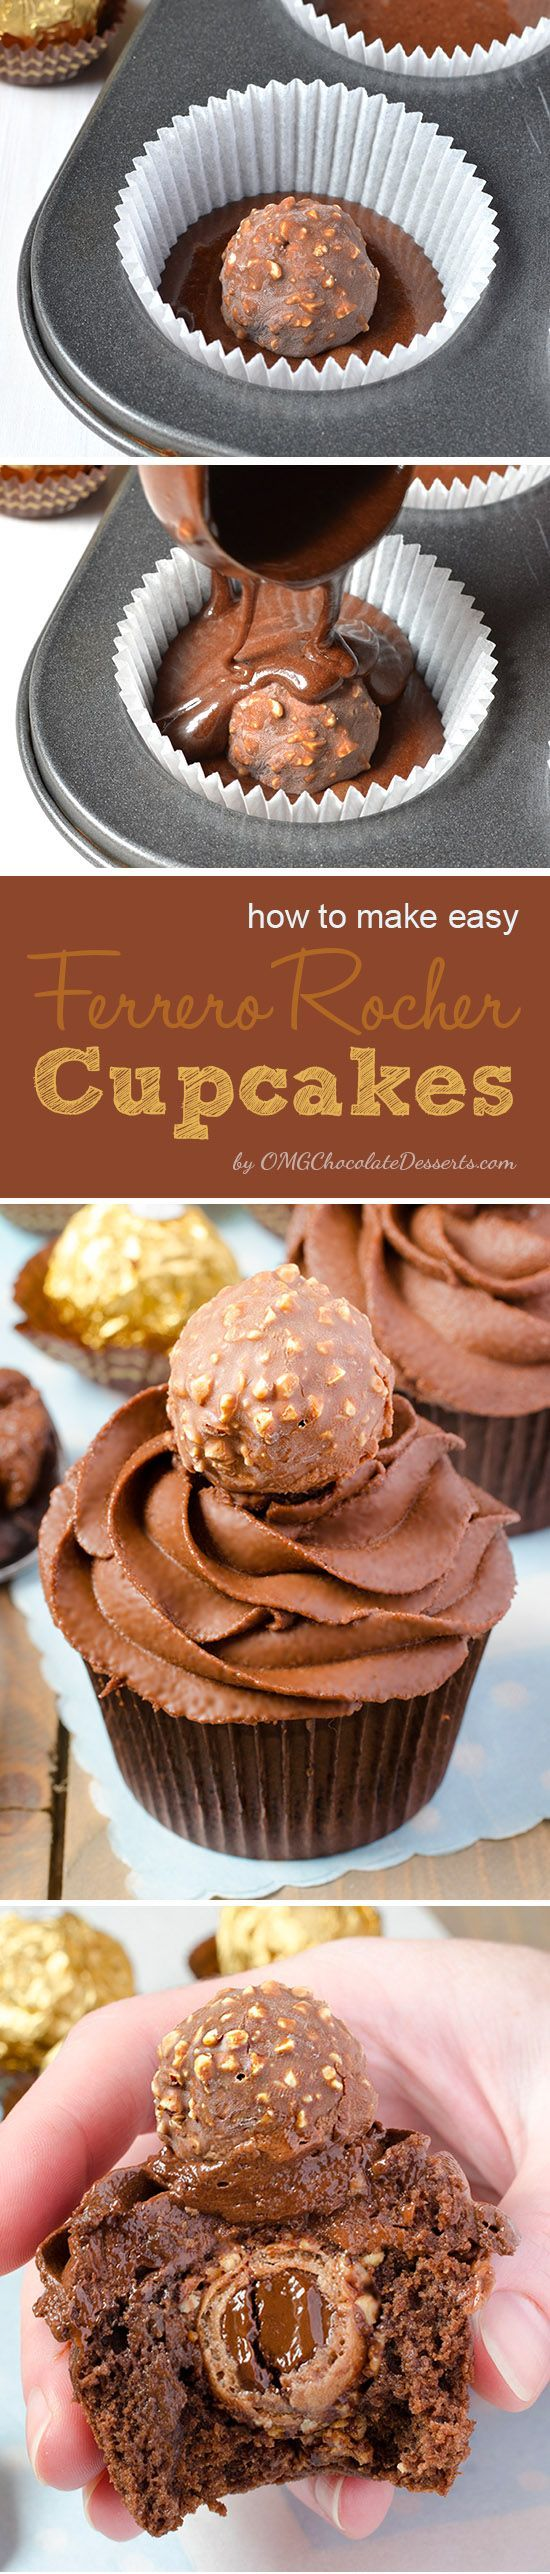 ferrero rocher cupcakes.......good god....